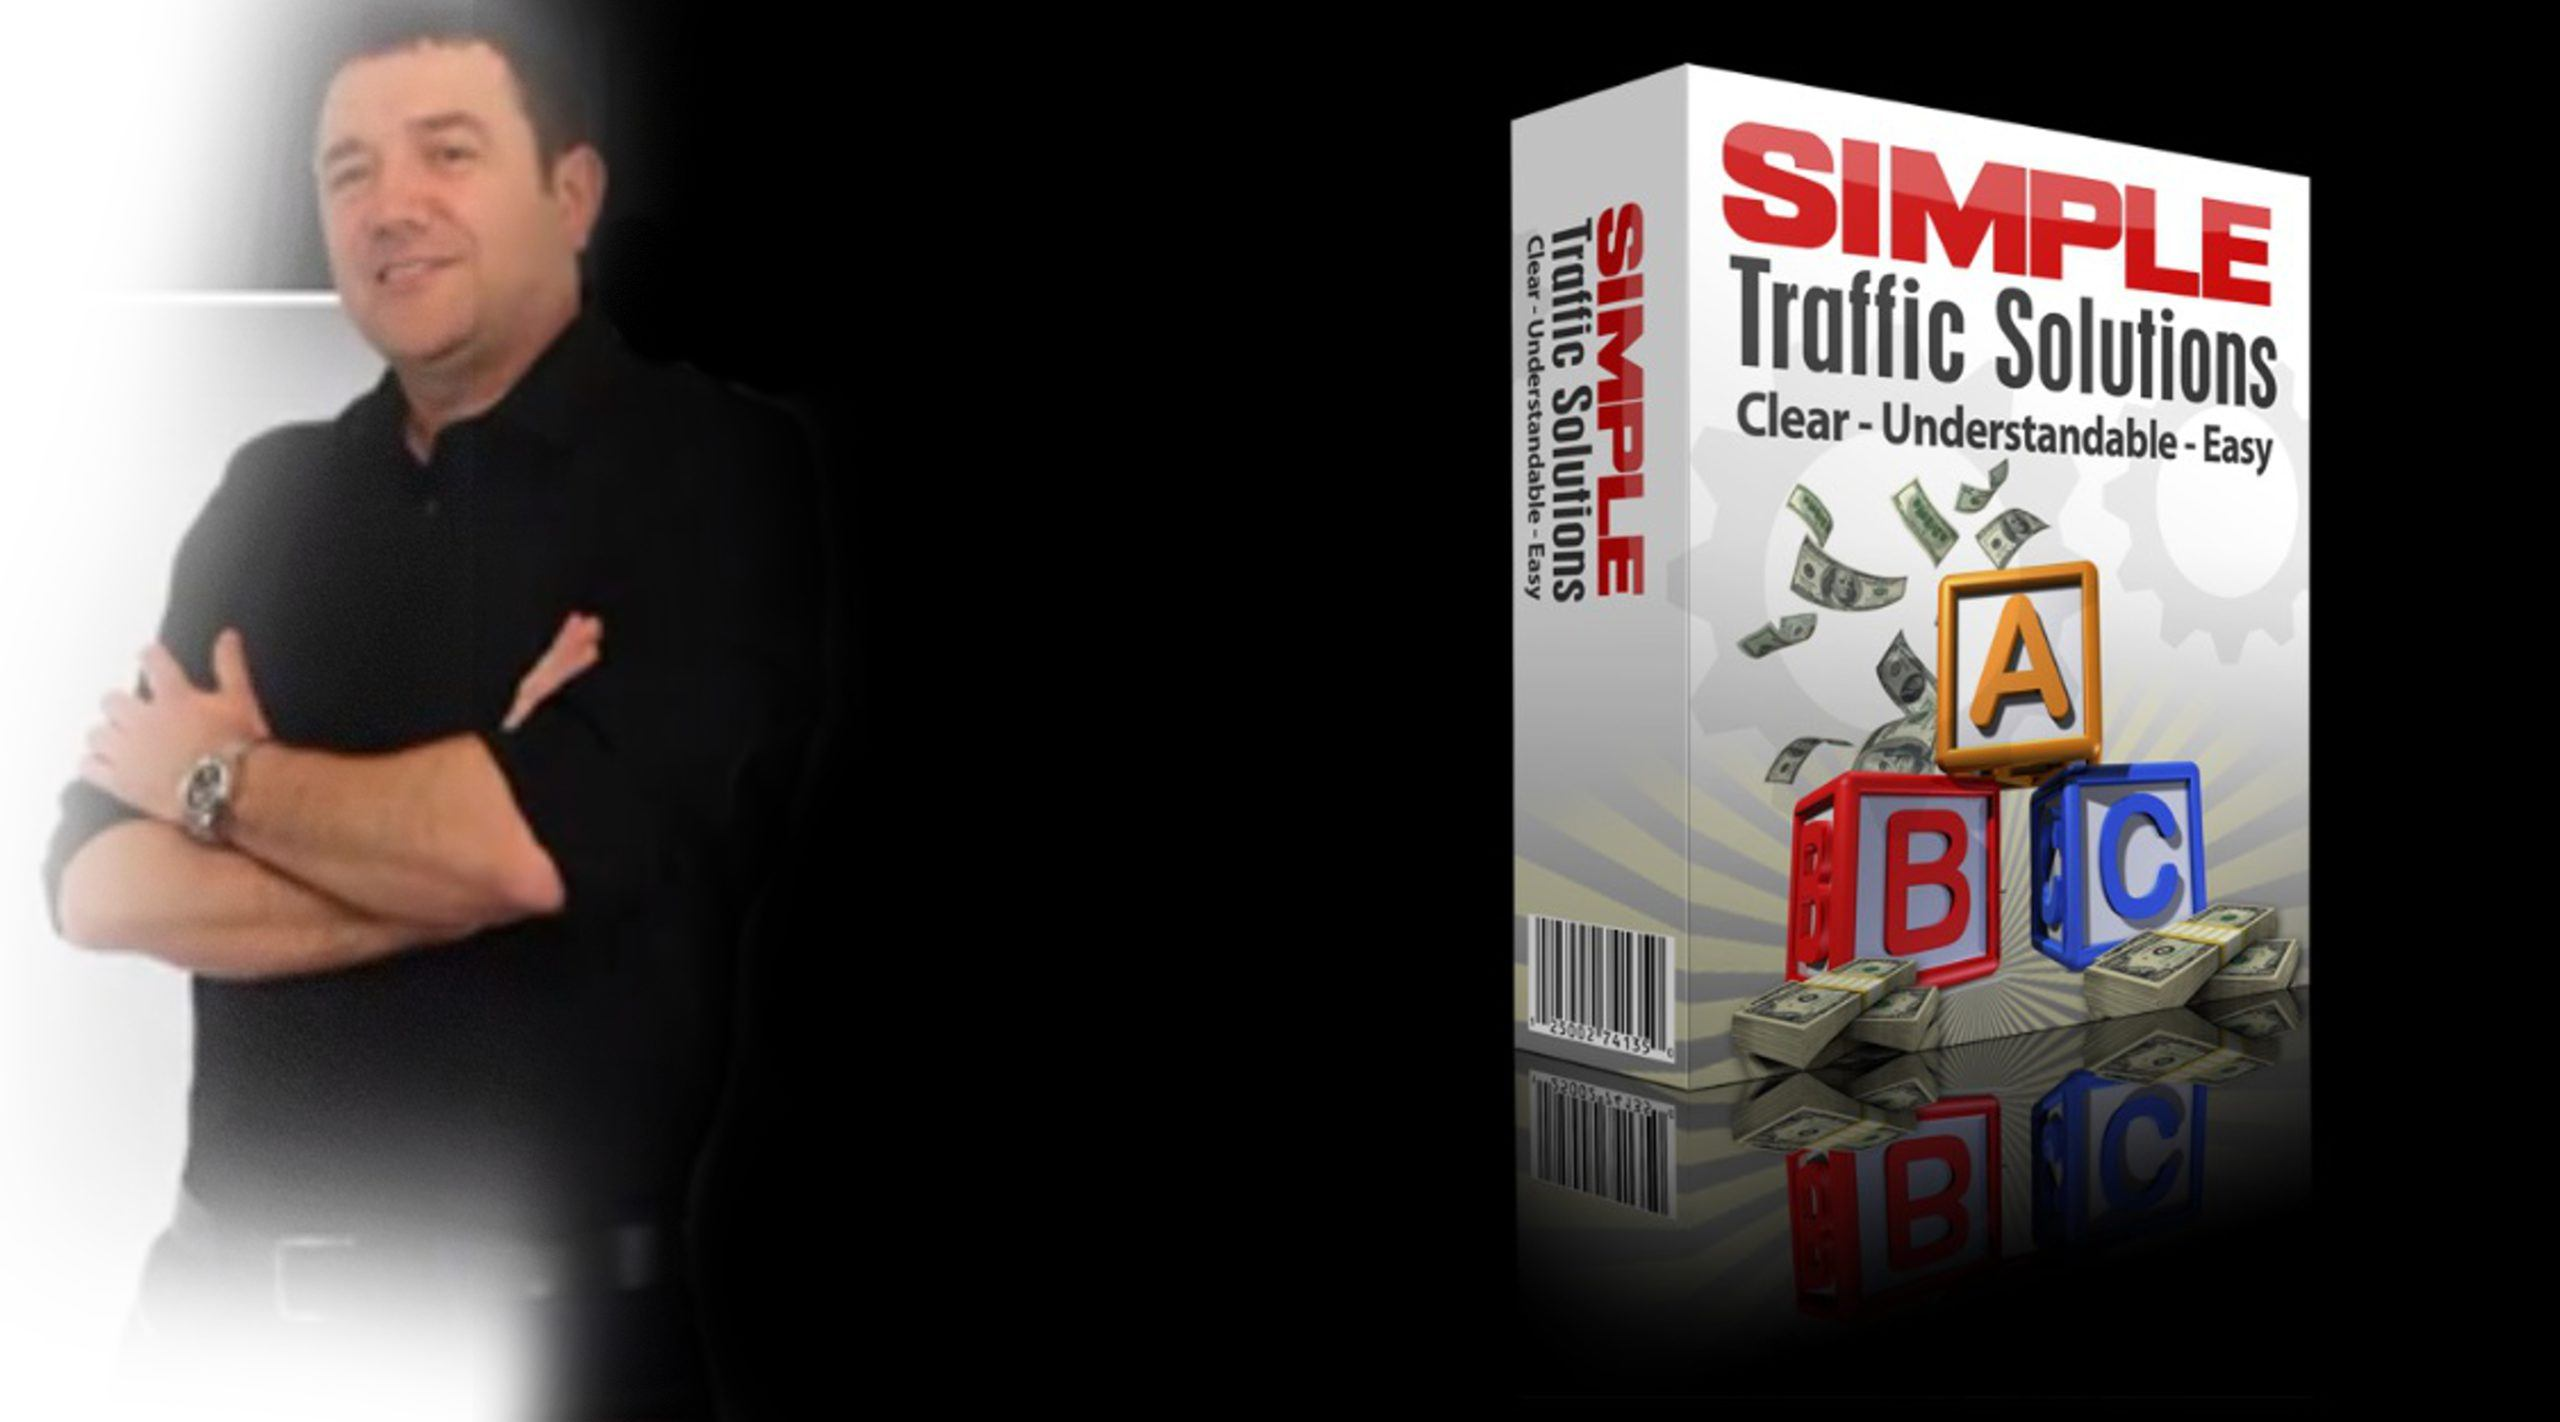 What is Simple Traffic Solutions? A worthy review explains whether it's scam or legit